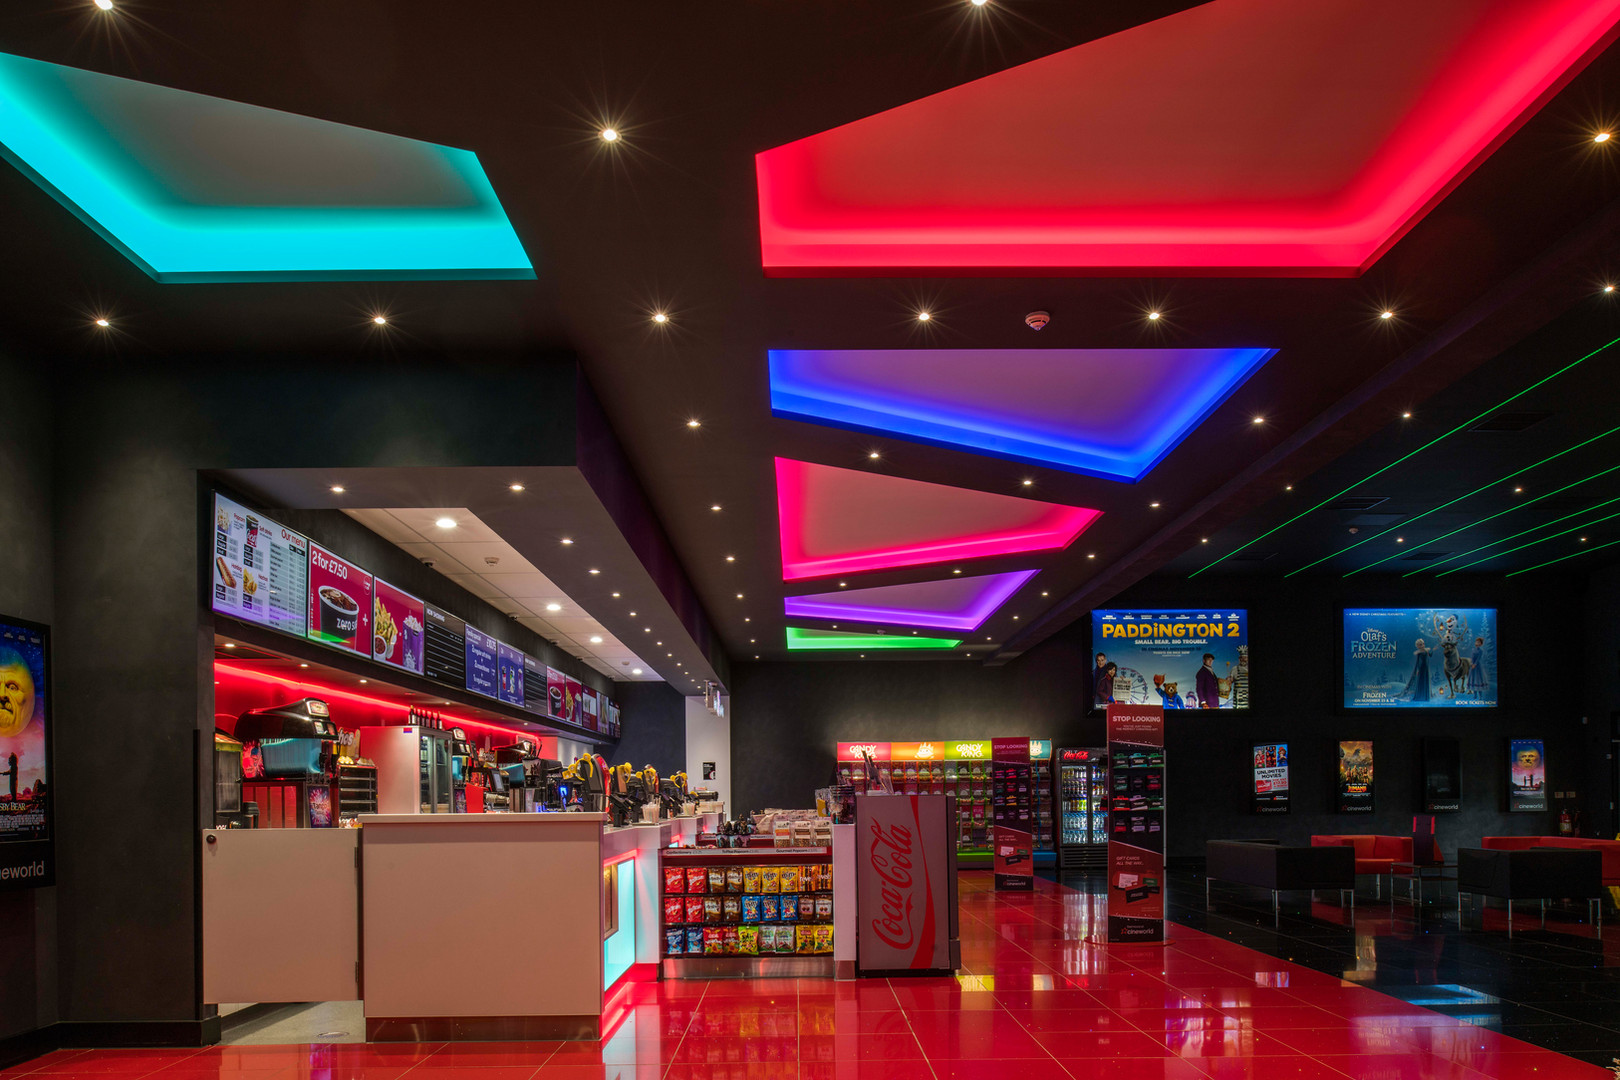 Internal photograph of a cinema foyer